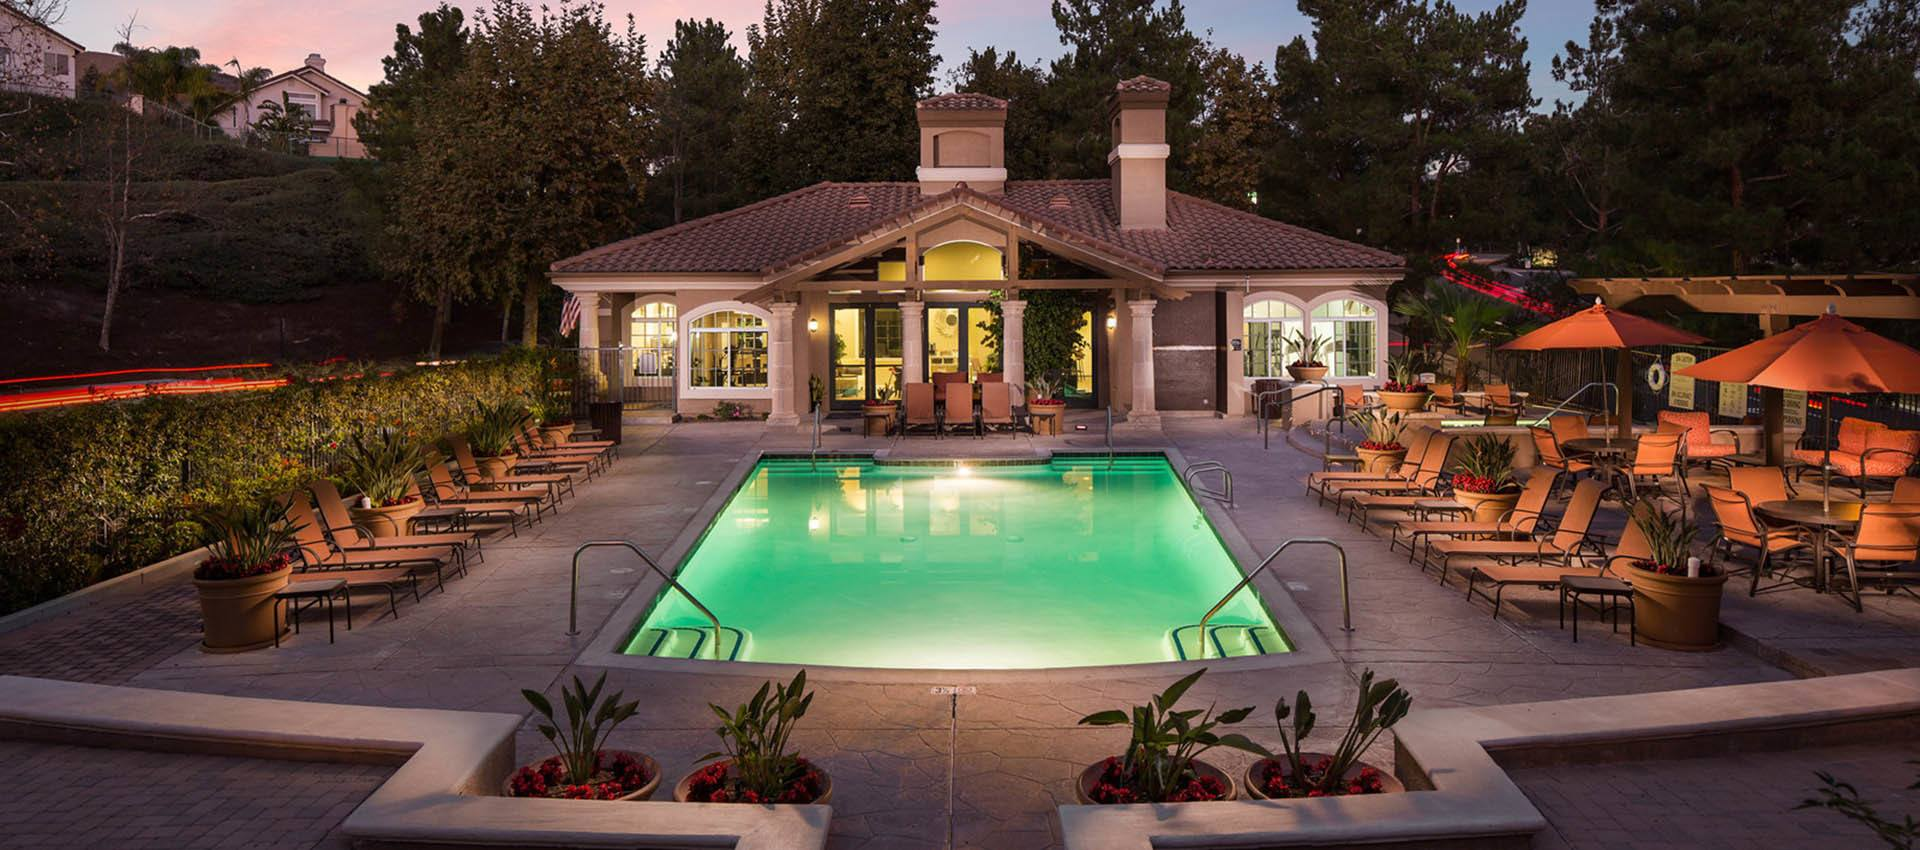 Resort Style Swimming Pool At Night at Paloma Summit Condominium Rentals in Foothill Ranch, CA